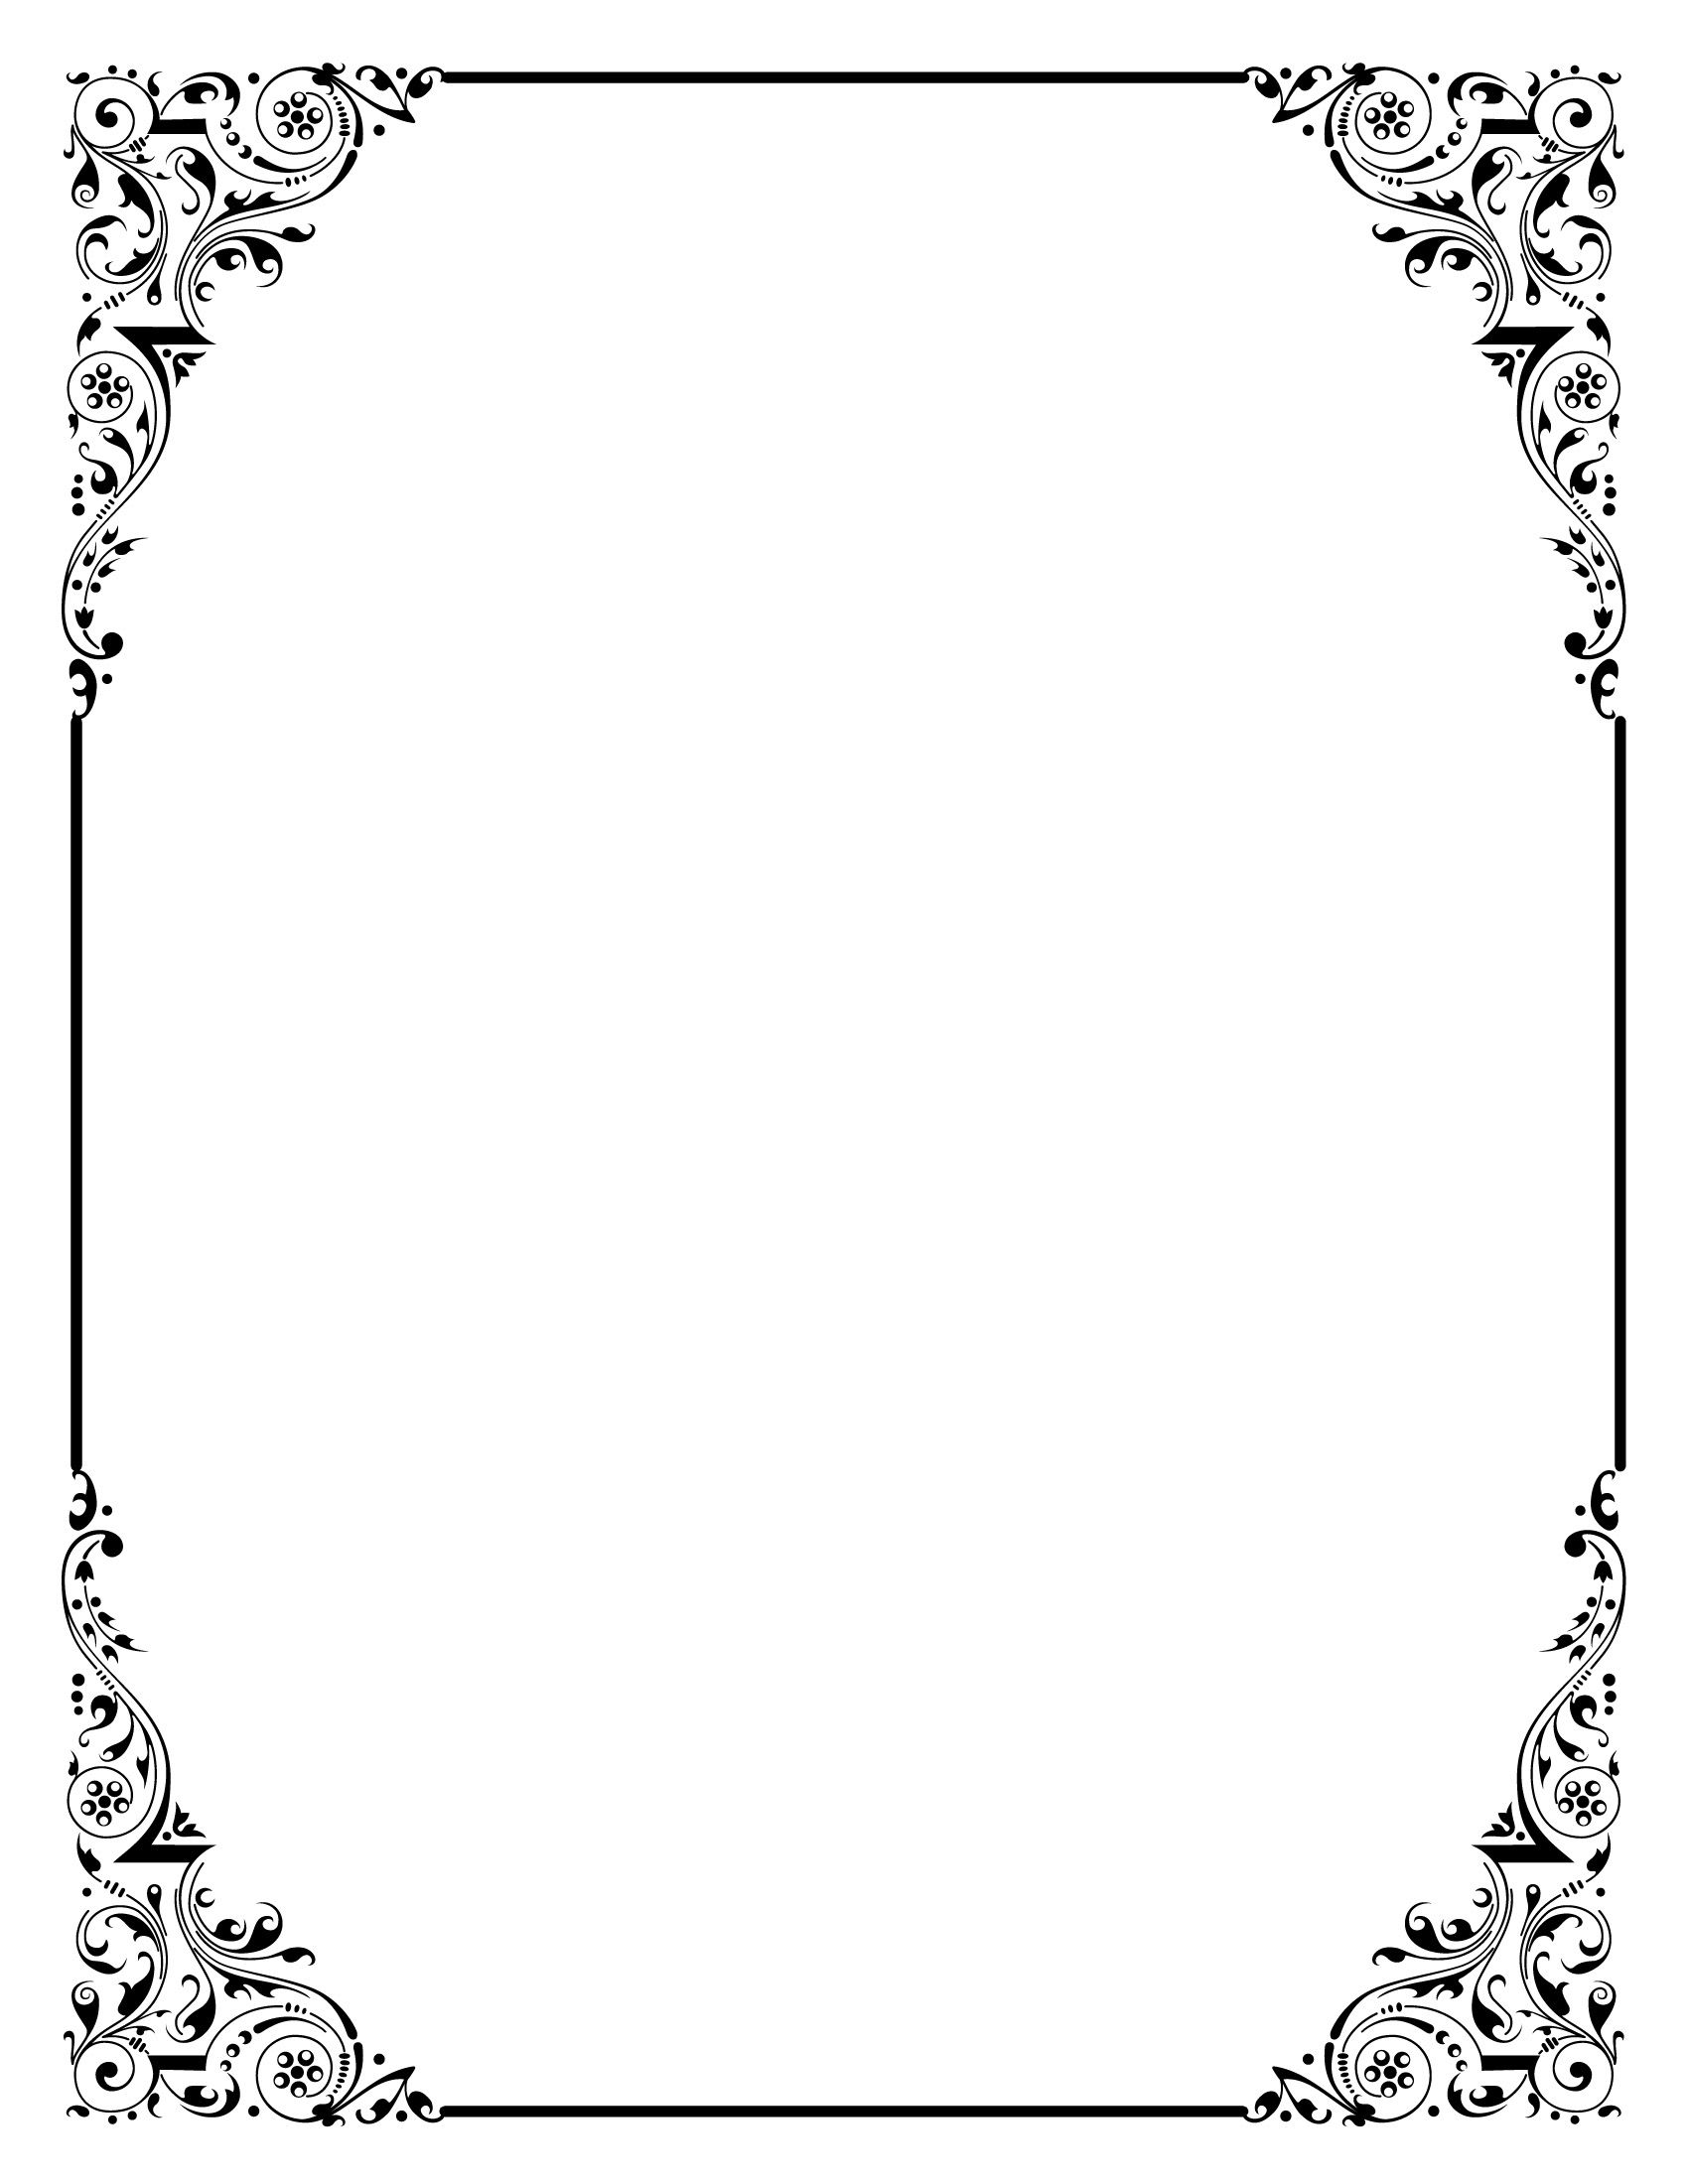 tea party cover border - Google Search | BLACK AND WHITE BORDERS FOR ...